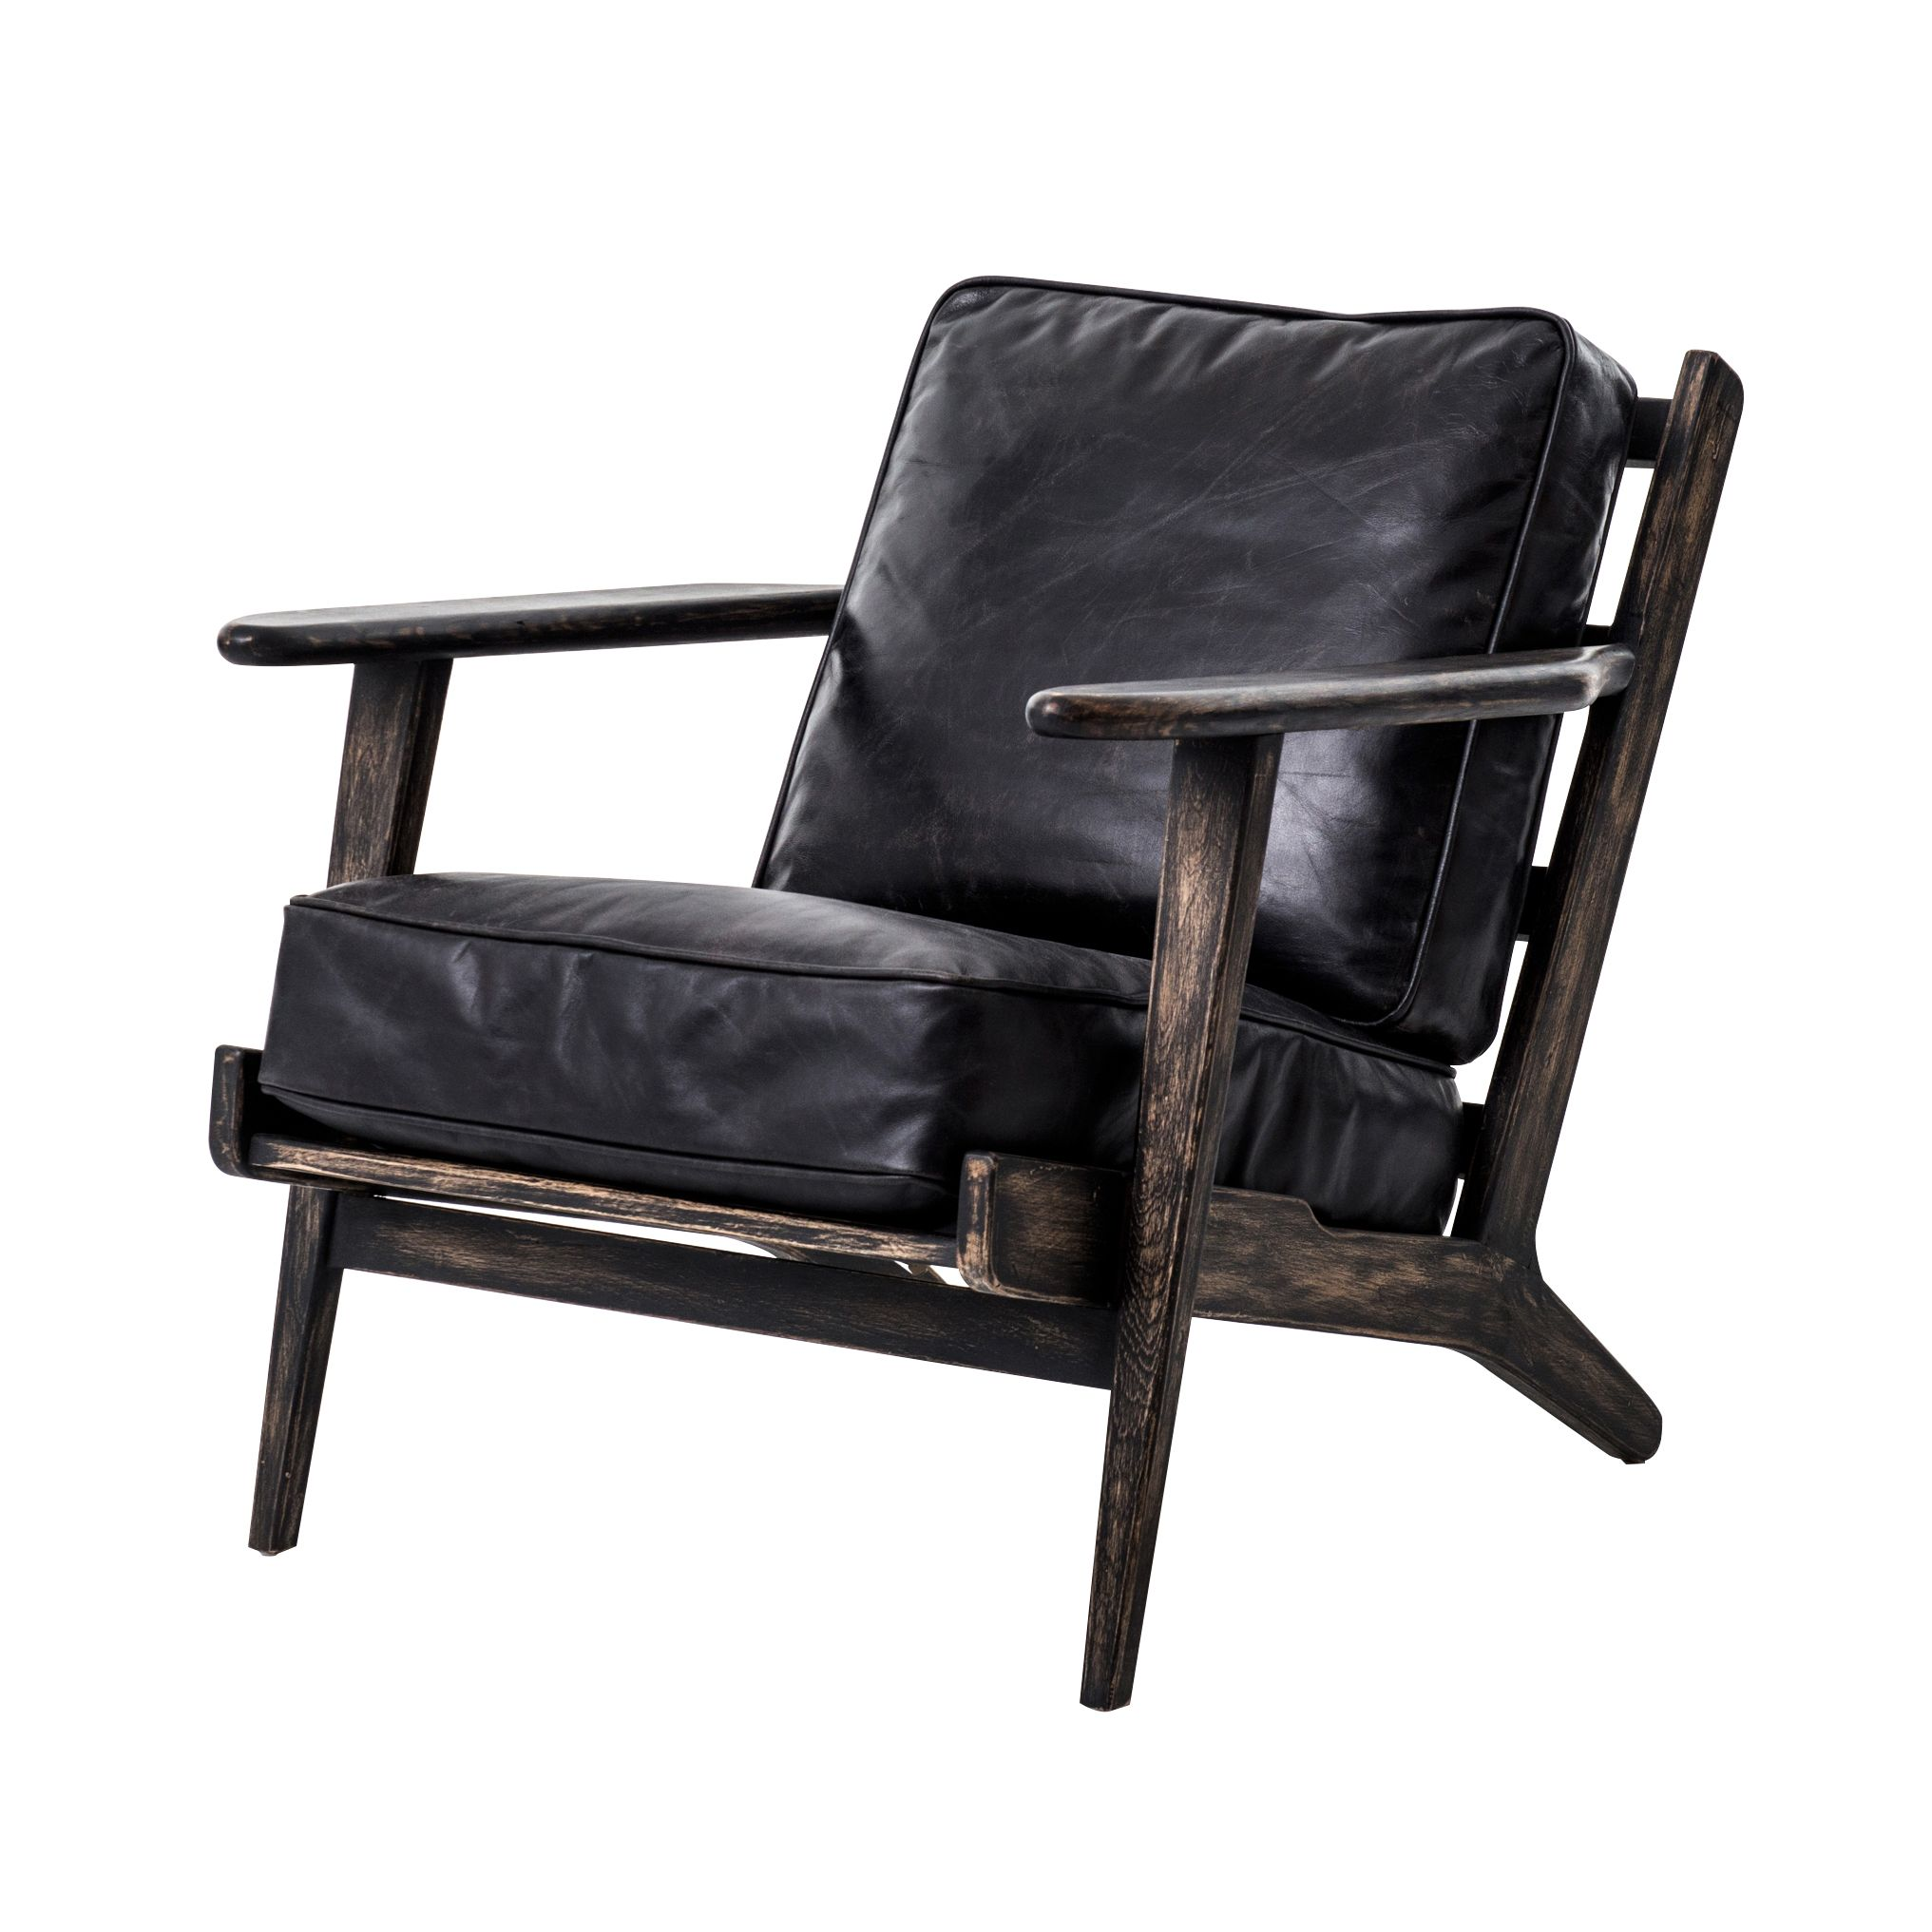 Hip Furniture   BROOKS LOUNGE CHAIR   Our Take On The Classic Adirondack  Emphasizes Comfort With